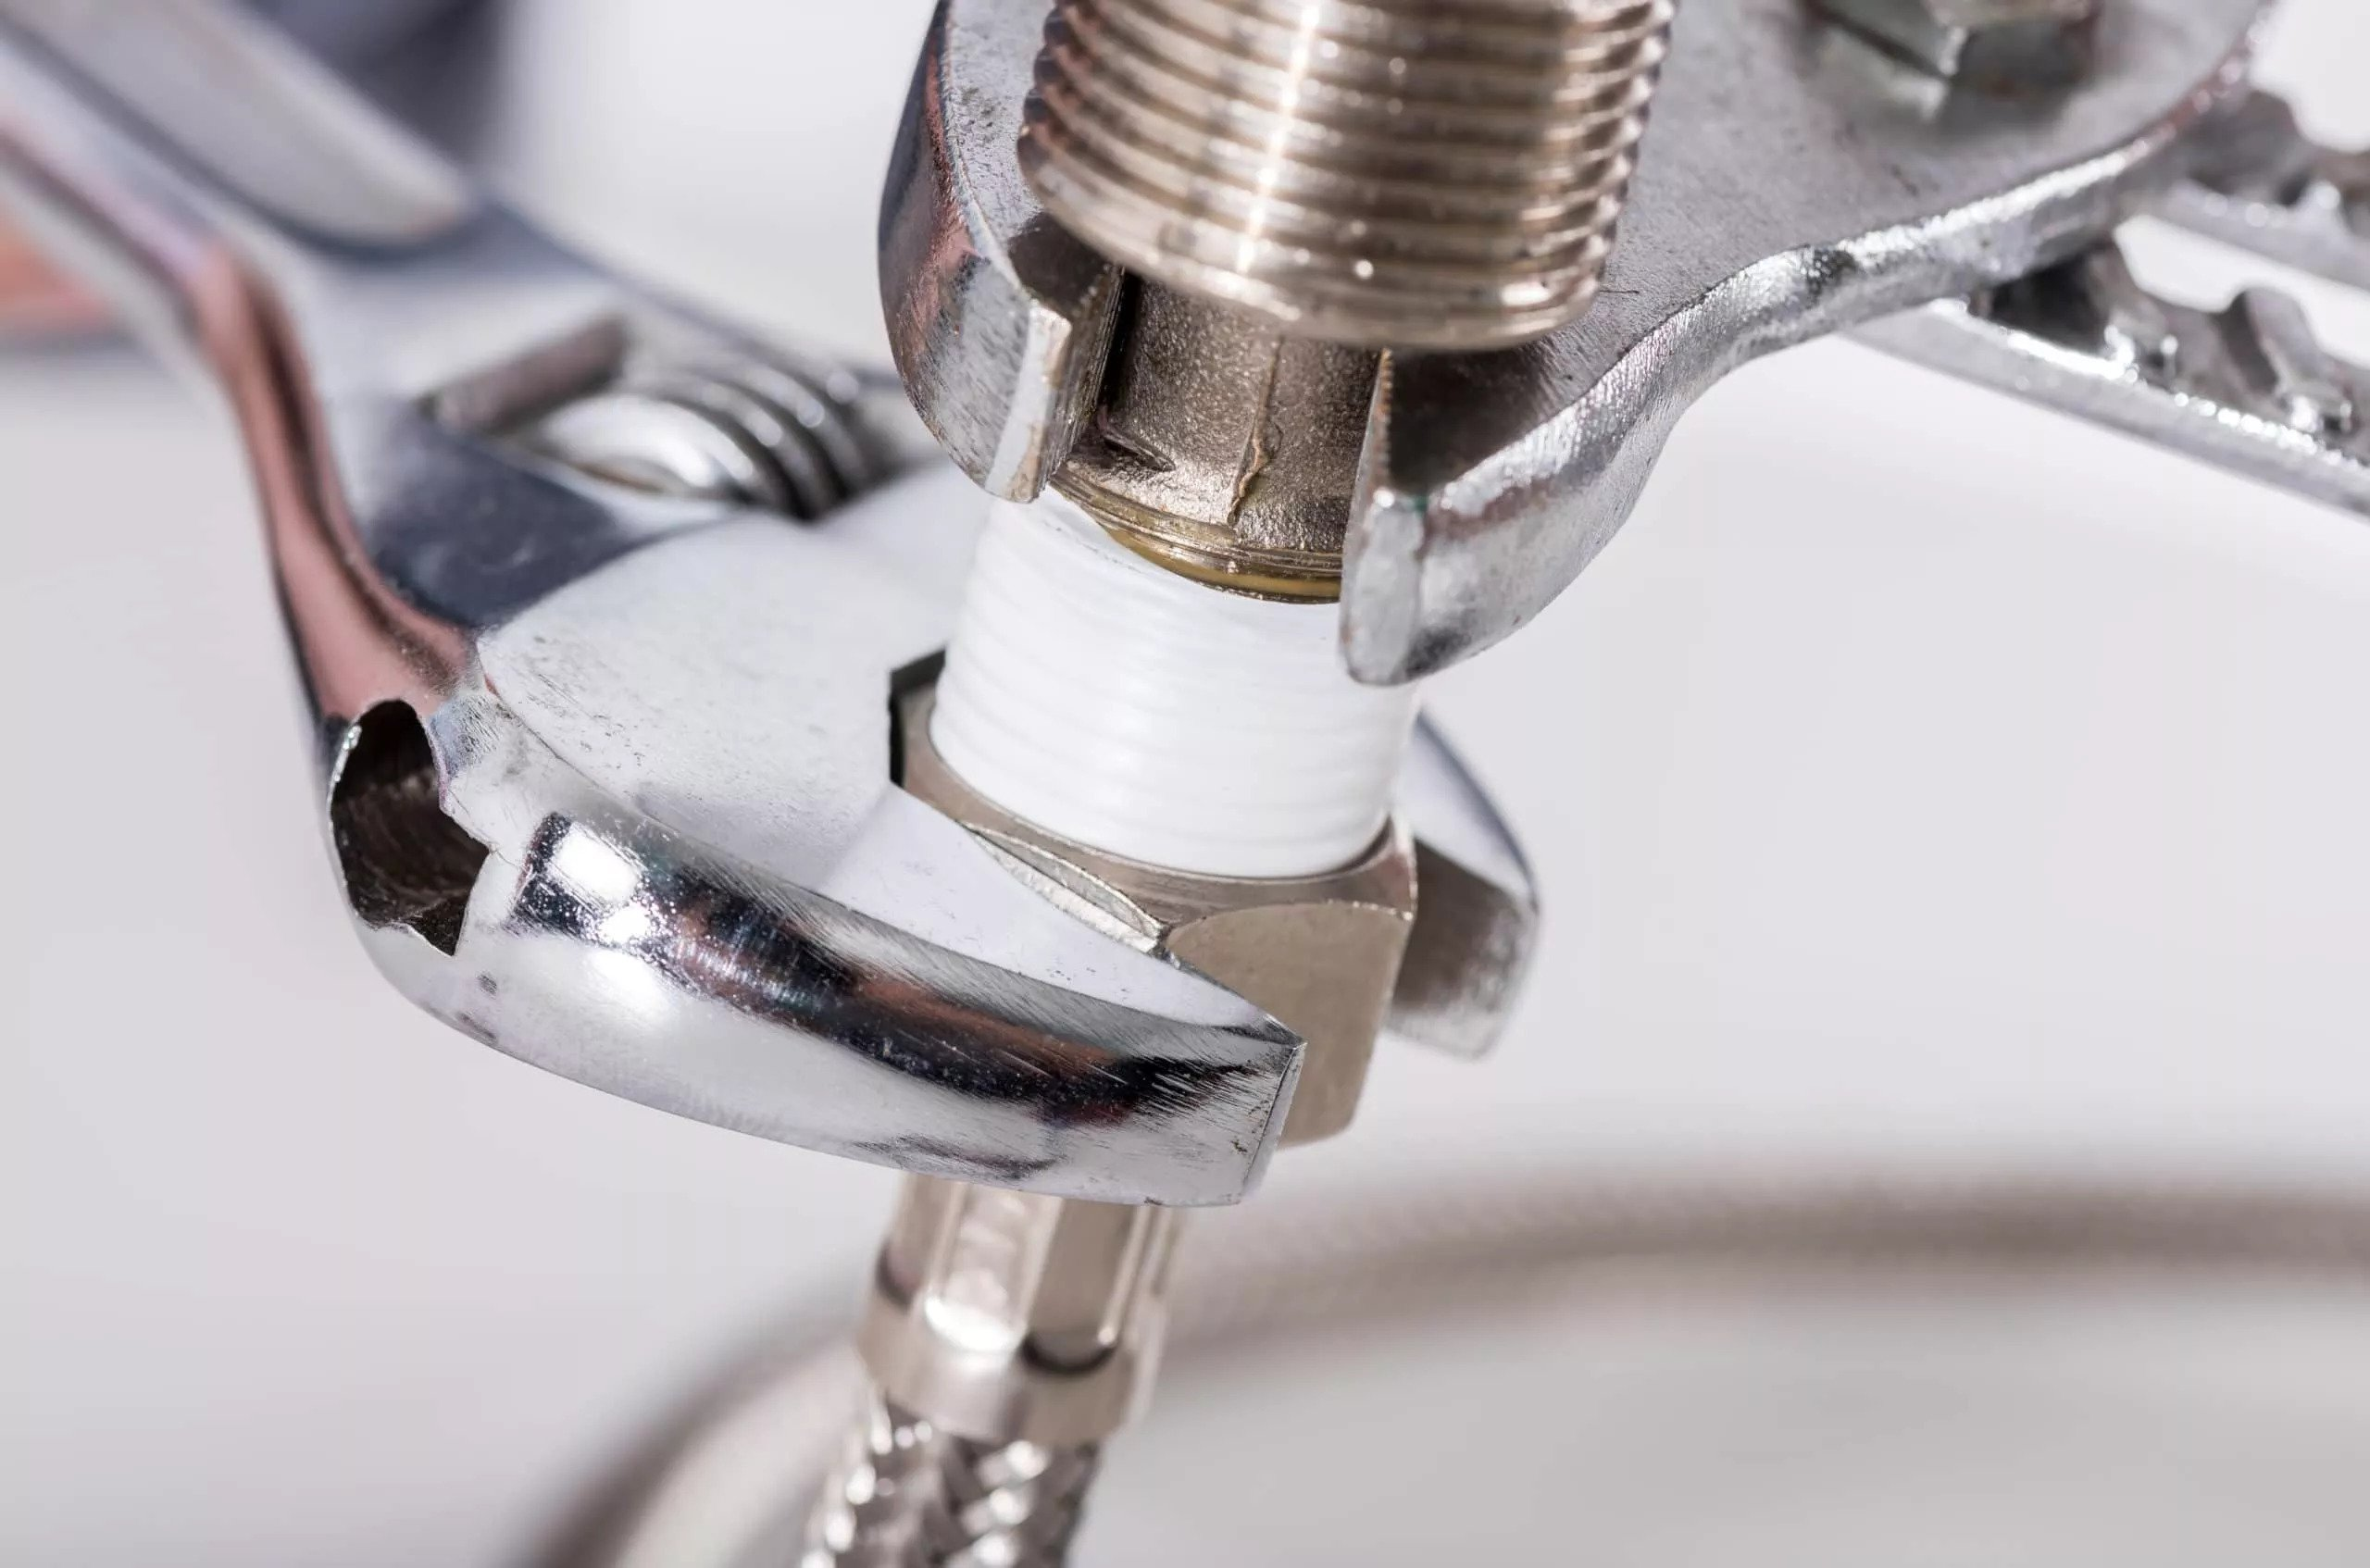 Hiring the Services of a Professional Plumbing Service Provider